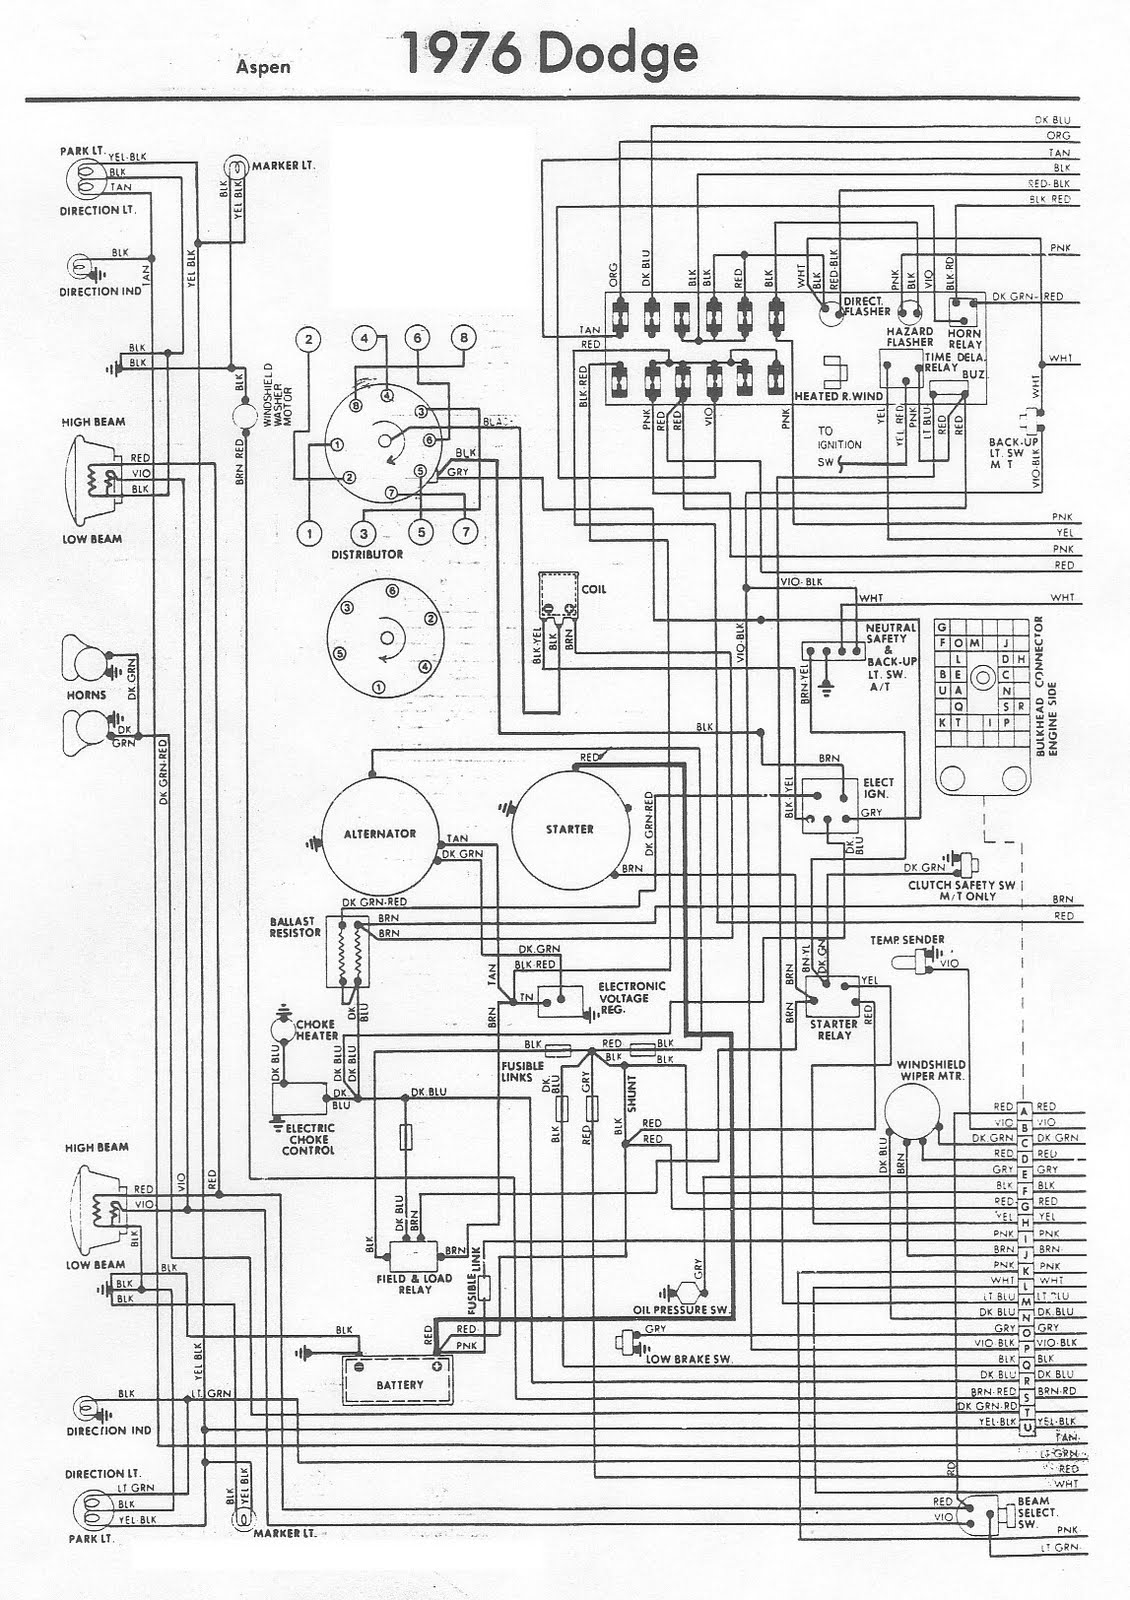 free auto wiring diagram 1976 dodge aspen engine 1987 chevrolet truck wiring diagram